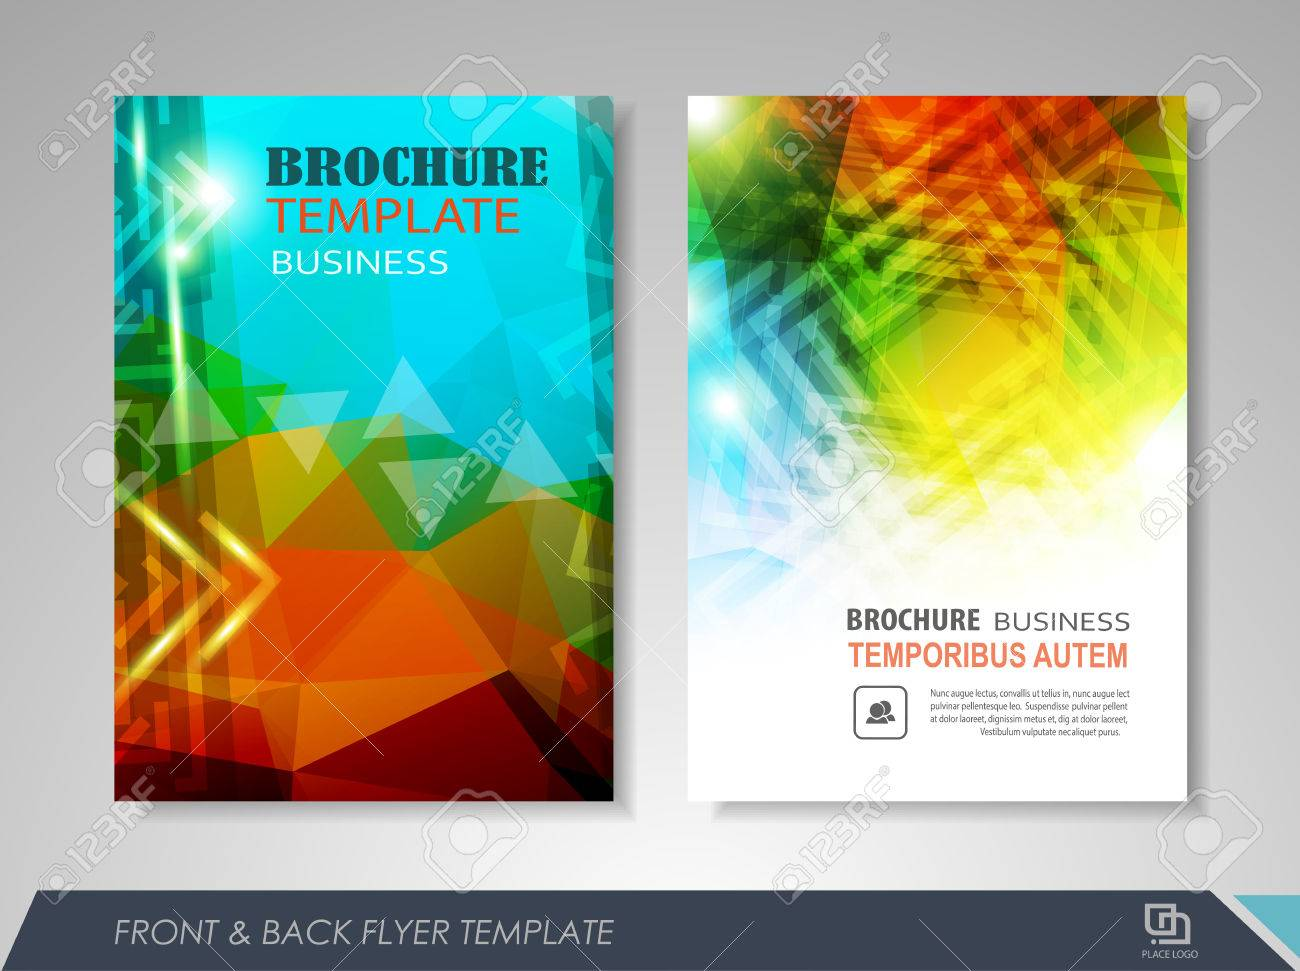 Front And Back Page Brochure Template Flyer Design Leaflet Royalty Free Cliparts Vectors And Stock Illustration Image 60324213